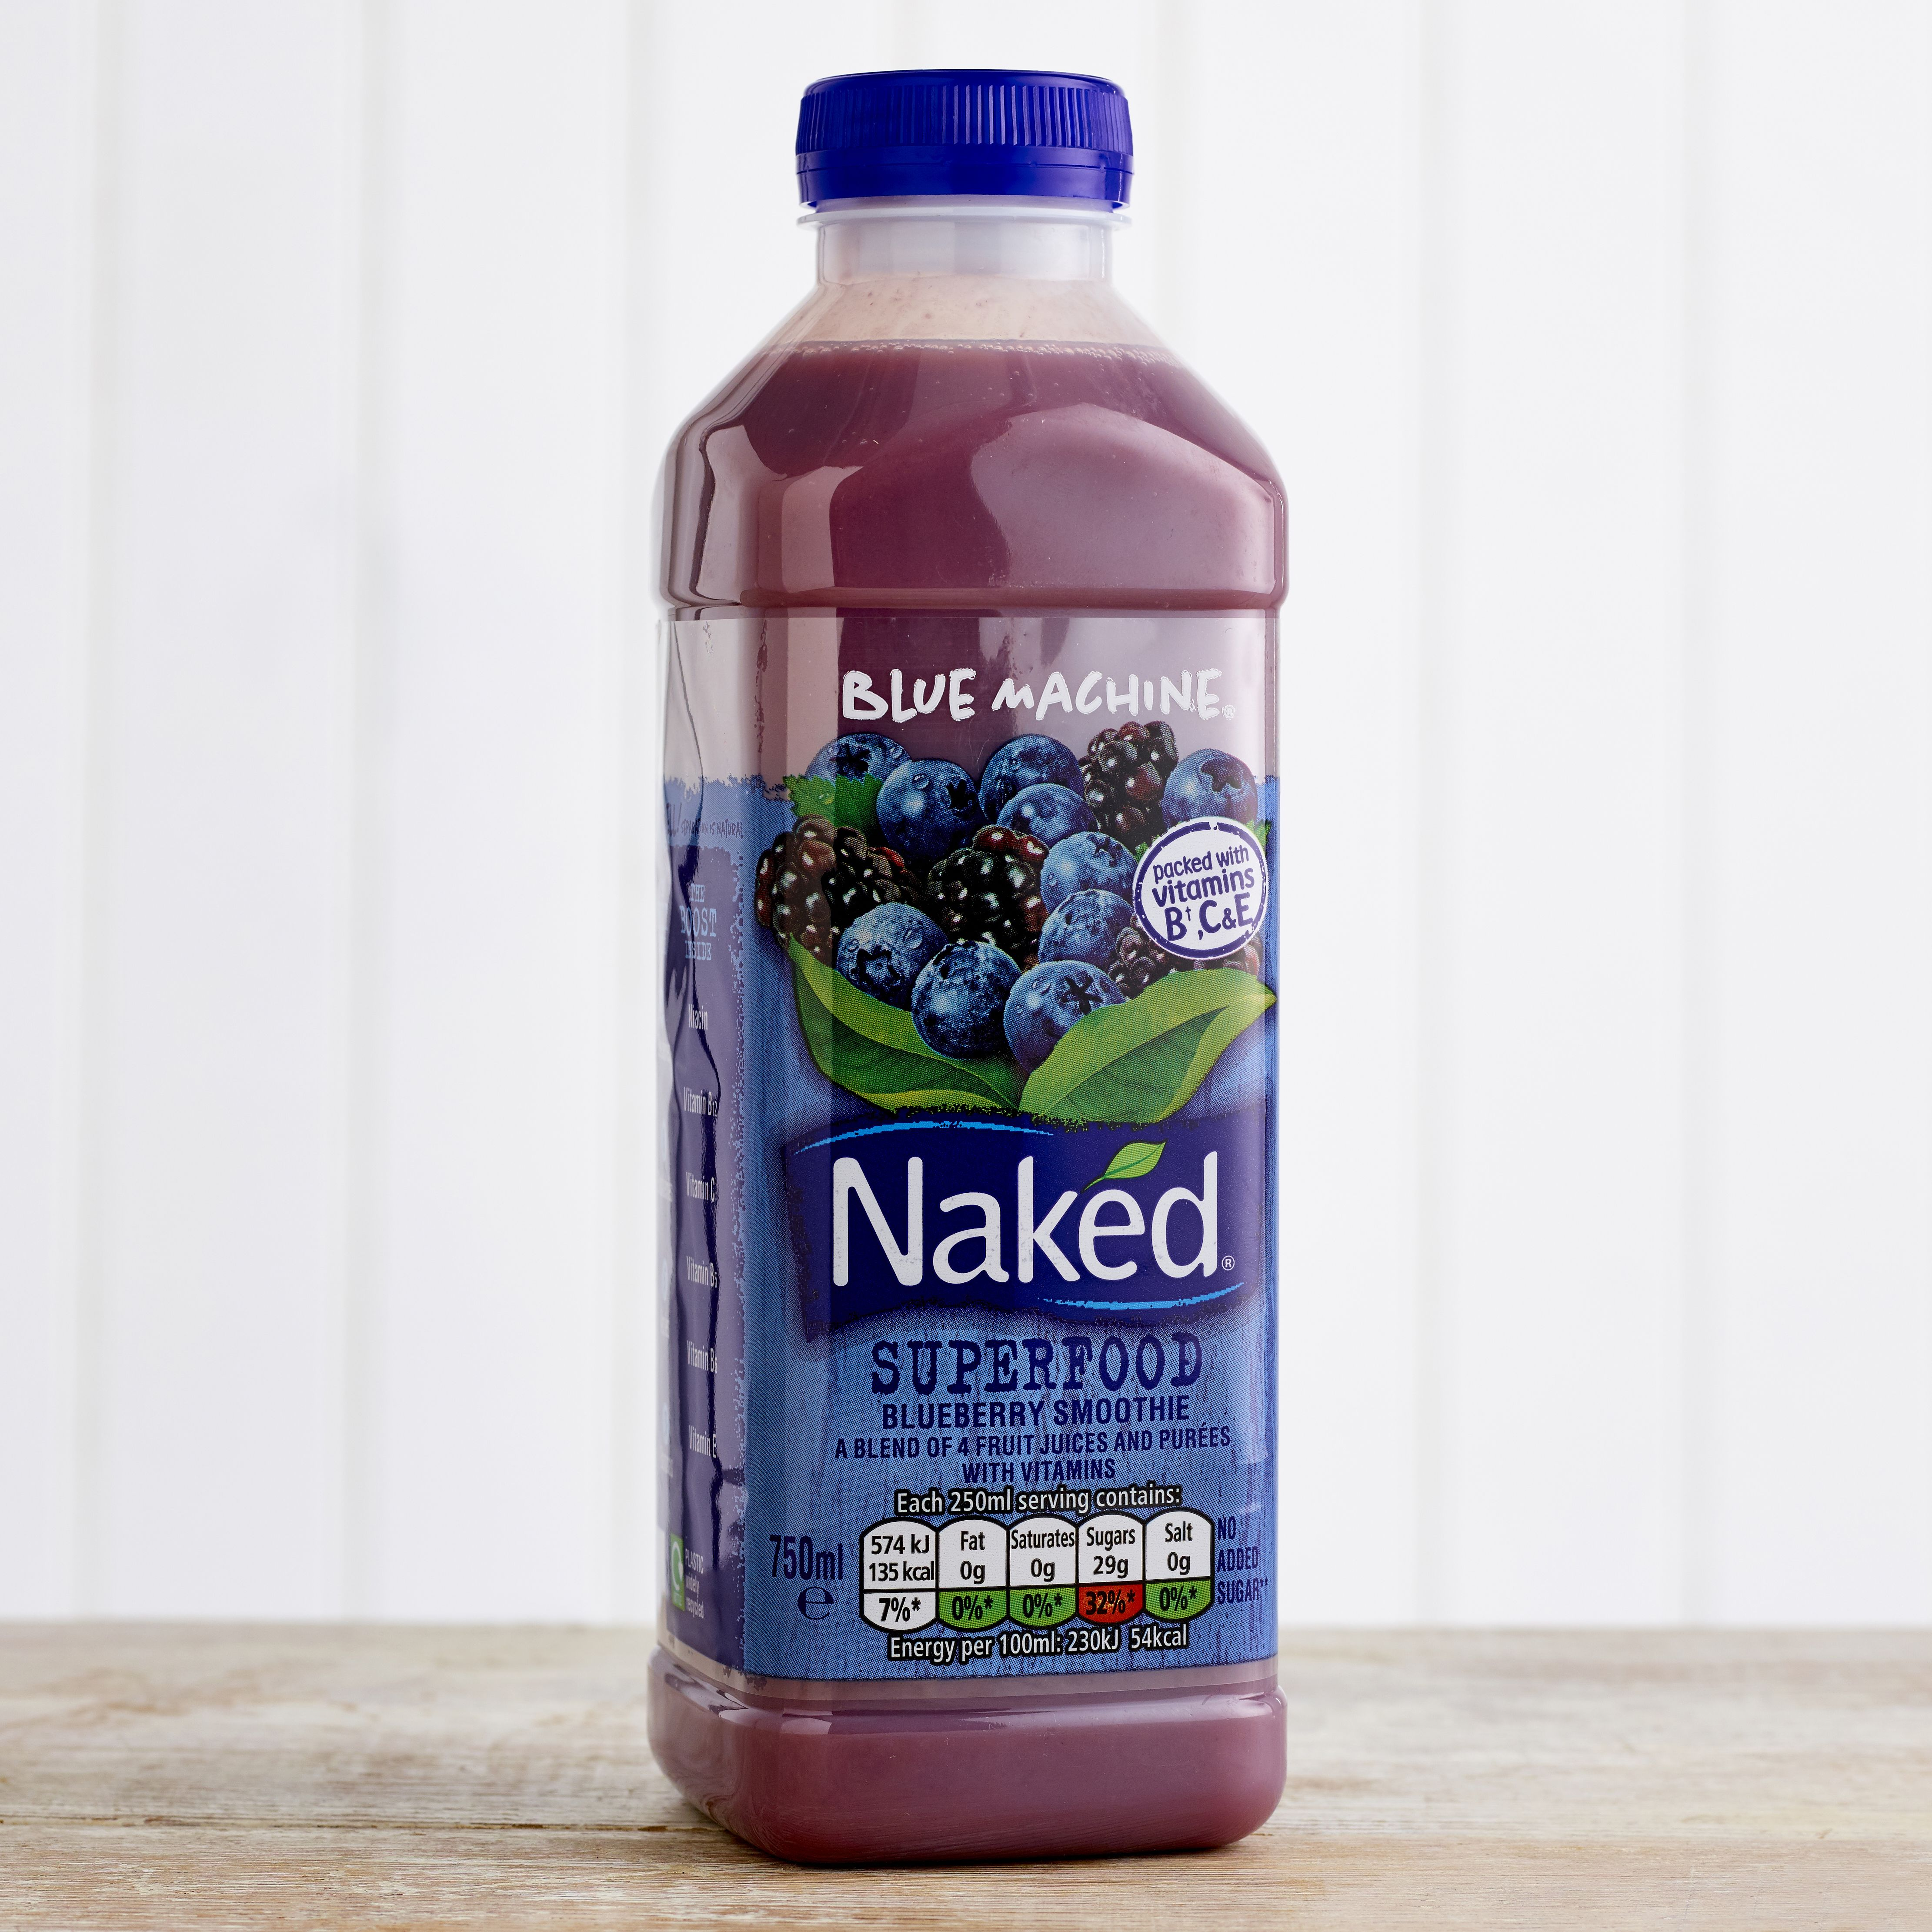 Naked Superfood Blueberry Smoothie, 750ml